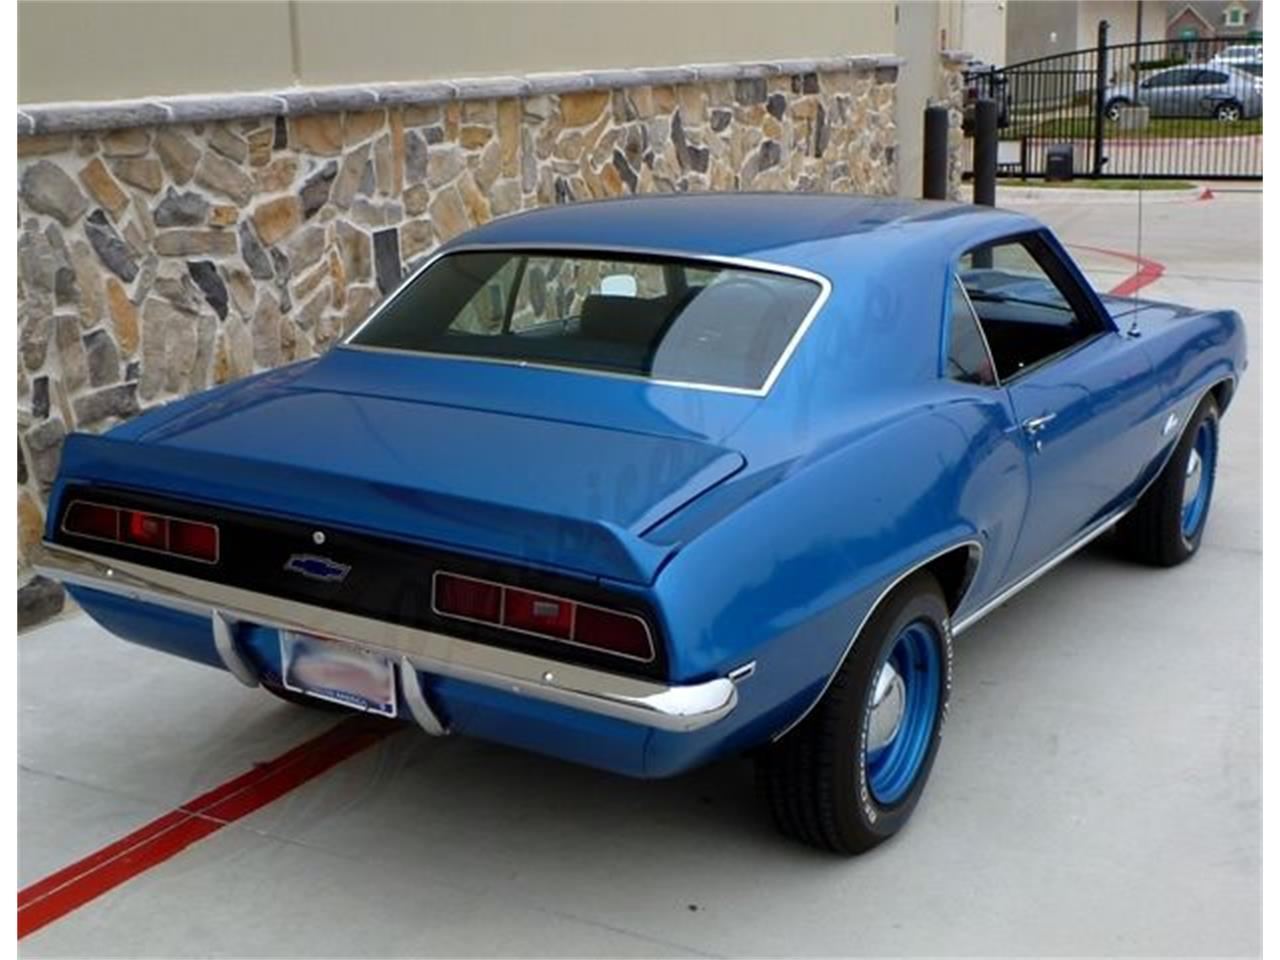 Large Picture of 1969 Chevrolet Camaro - $62,000.00 - KUGL